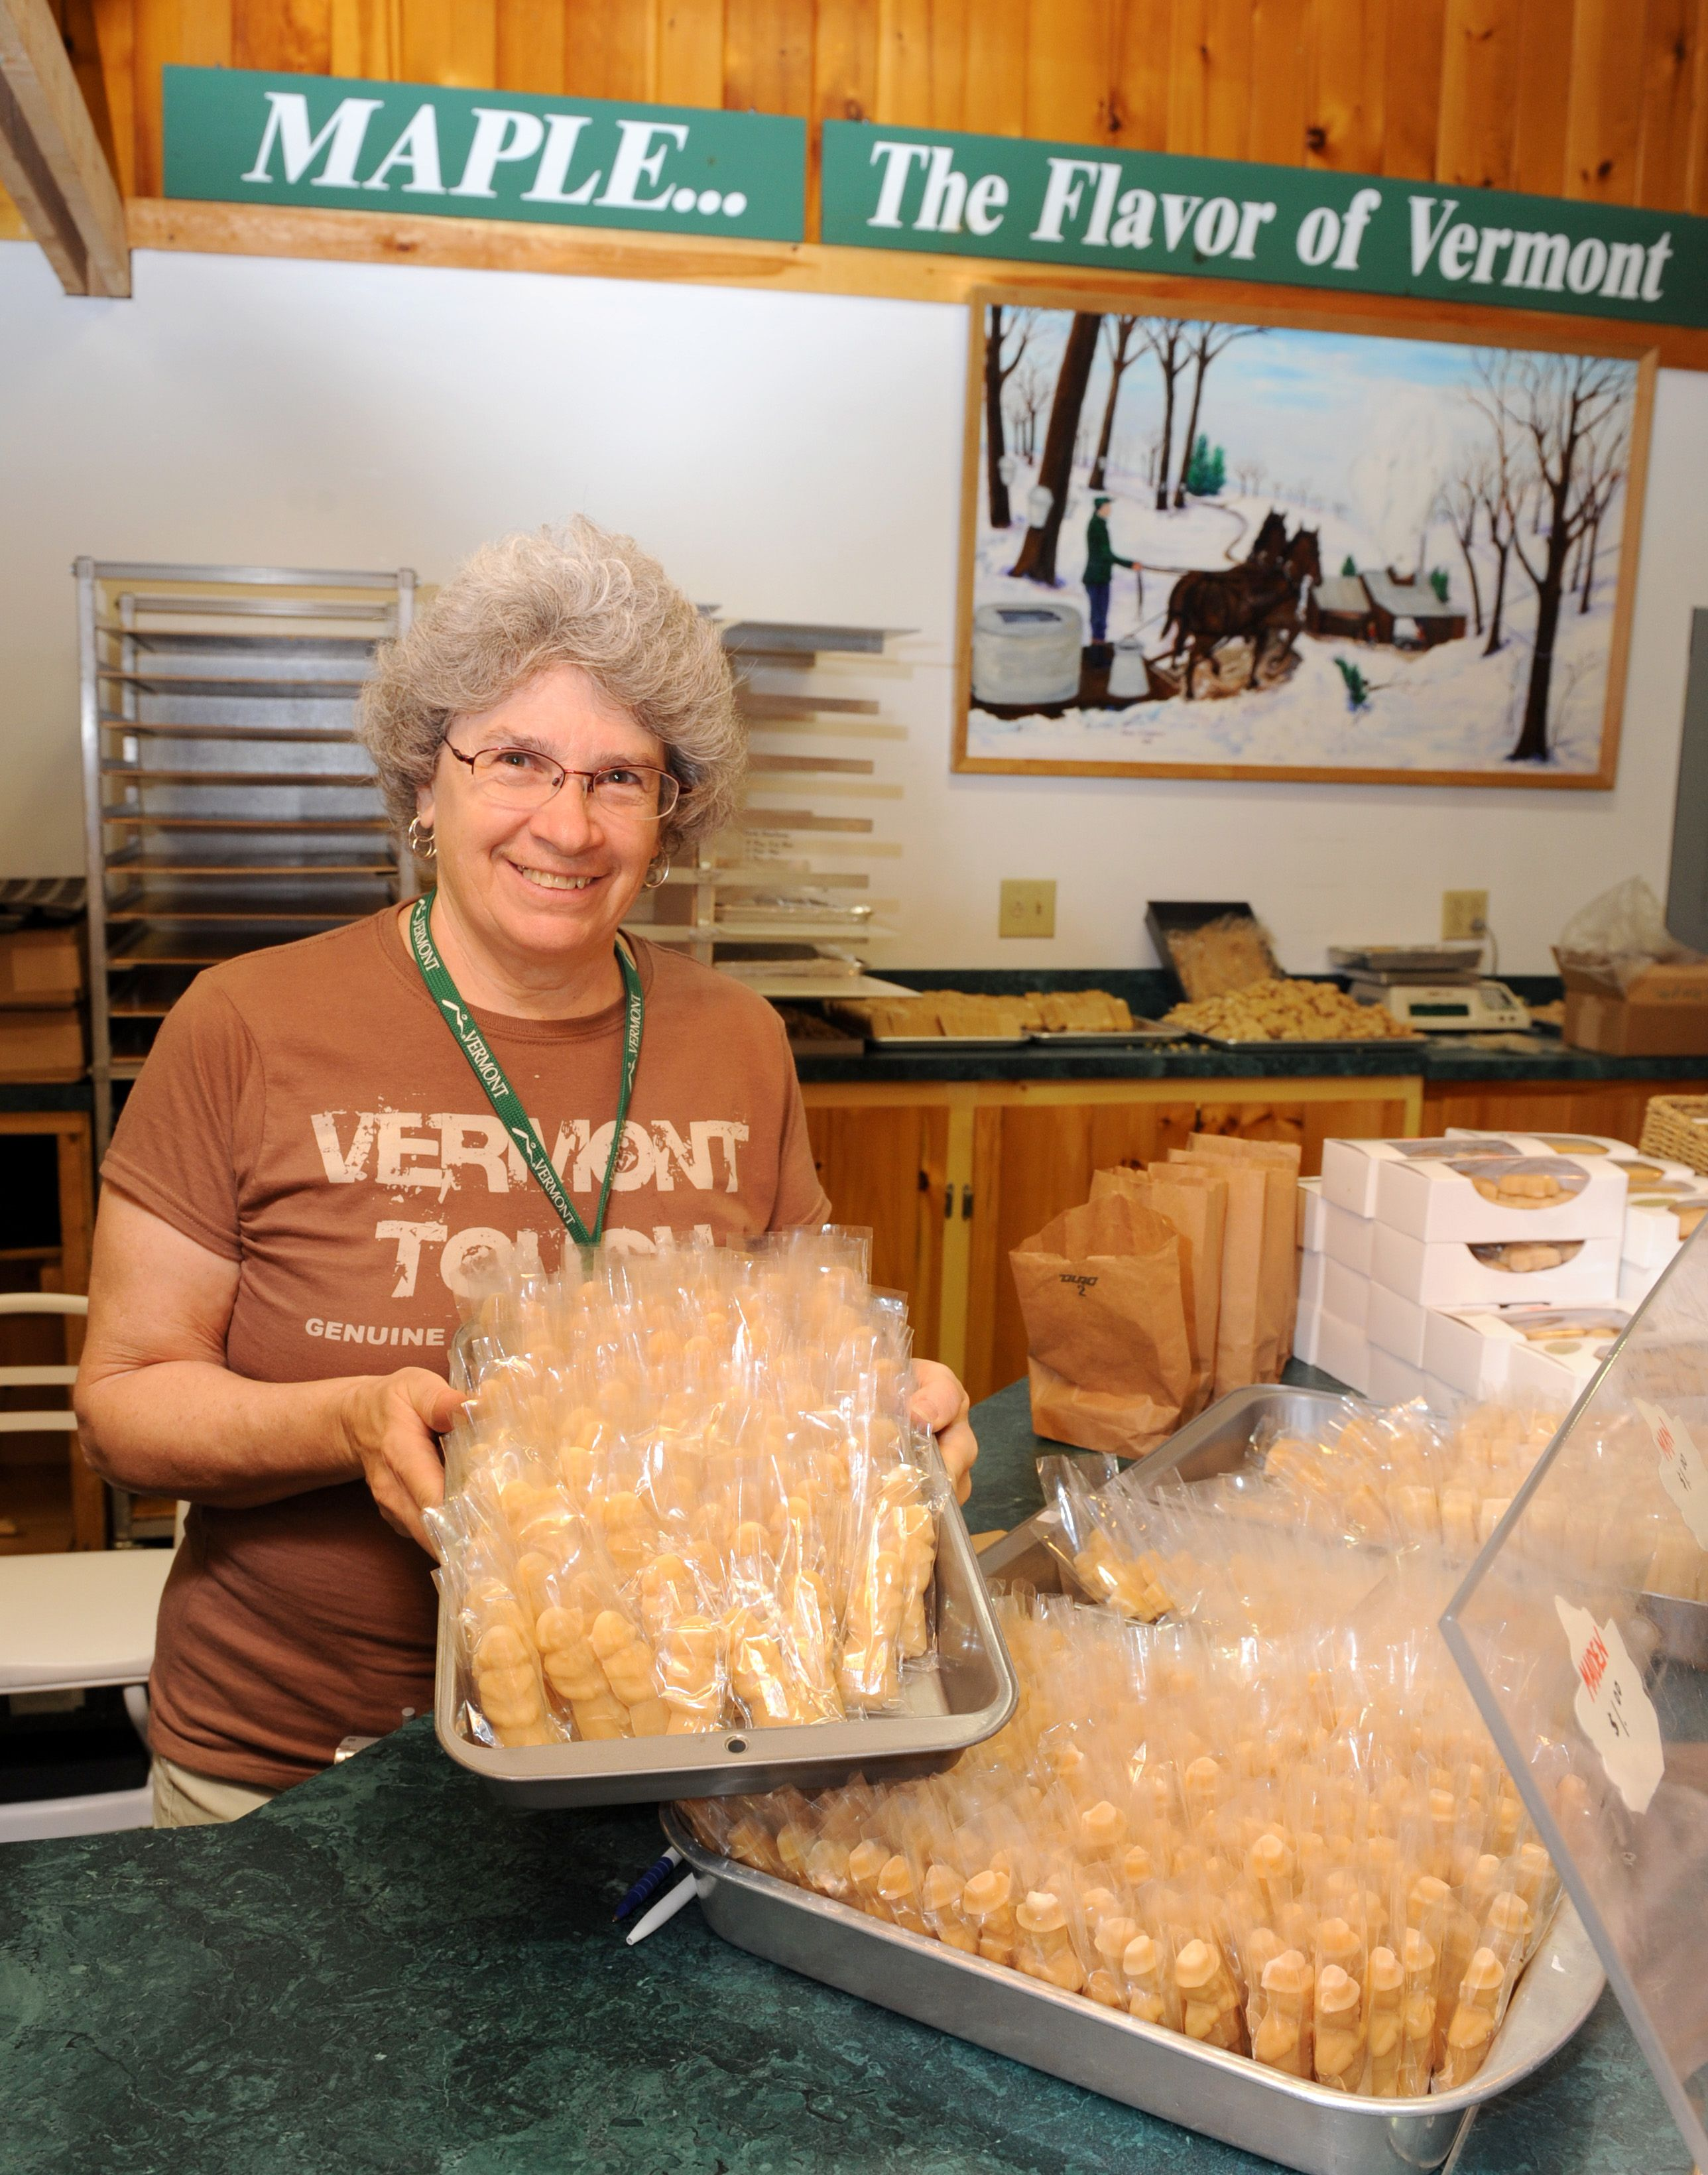 Vermont is famous for its maple syrup. One look at these homemade maple candies and you'll be taking these sugary snacks home for the whole family to enjoy.